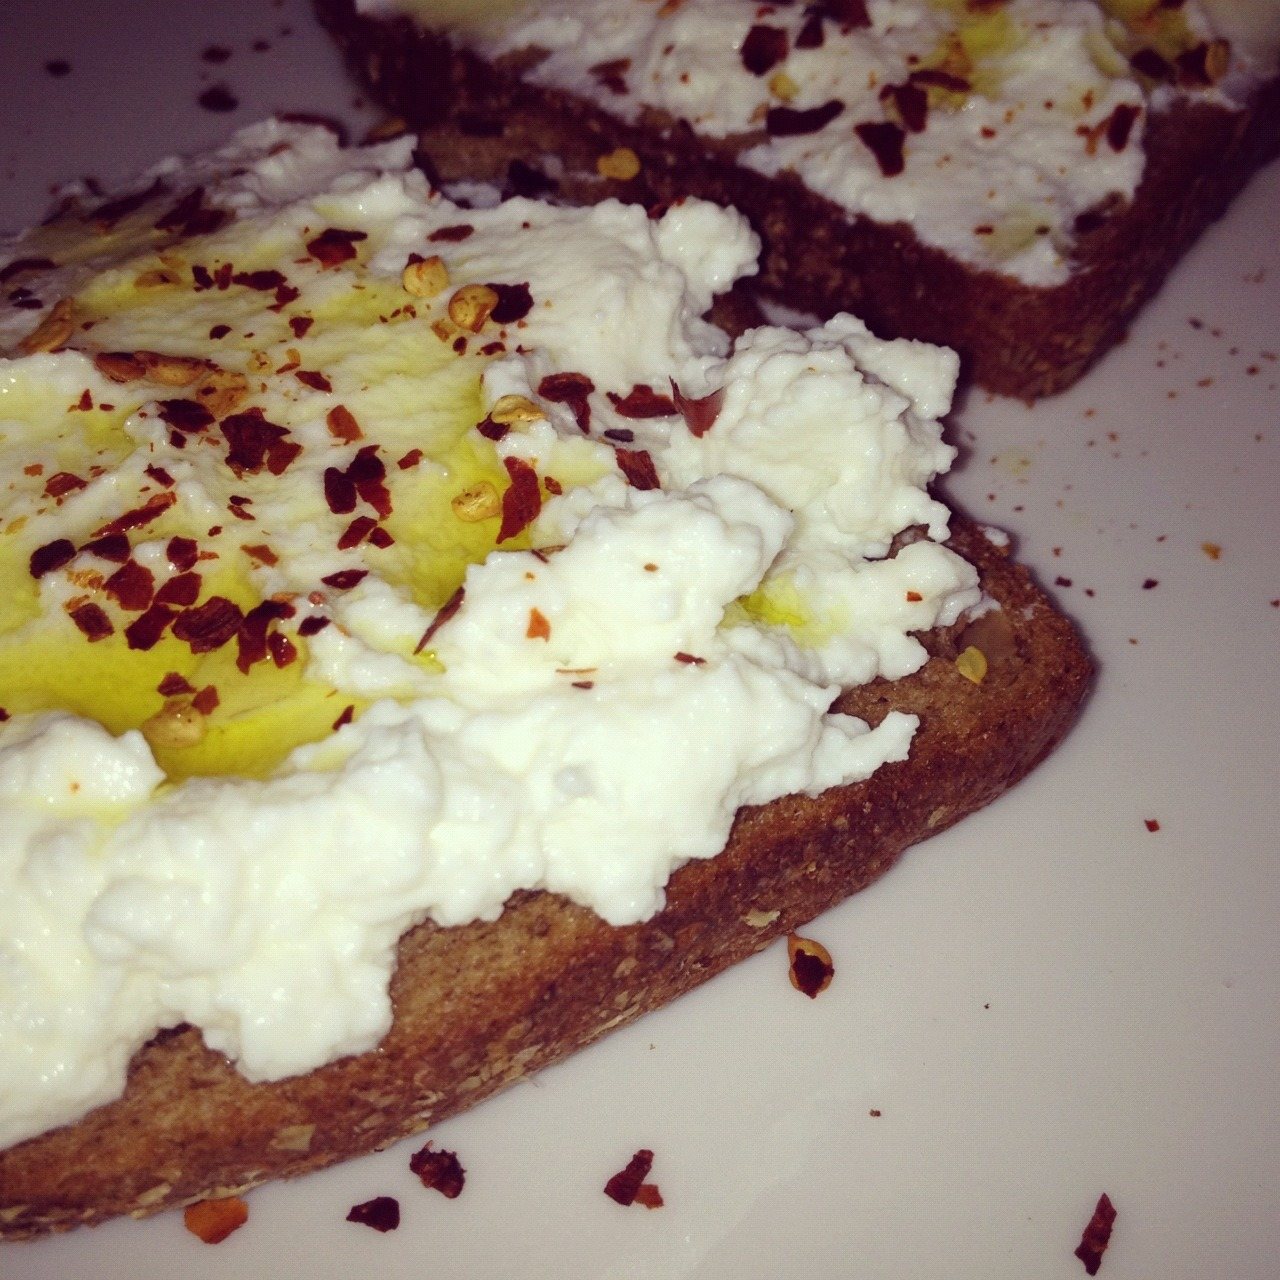 Ricotta, olive oil, sea salt and chili flakes on rye.